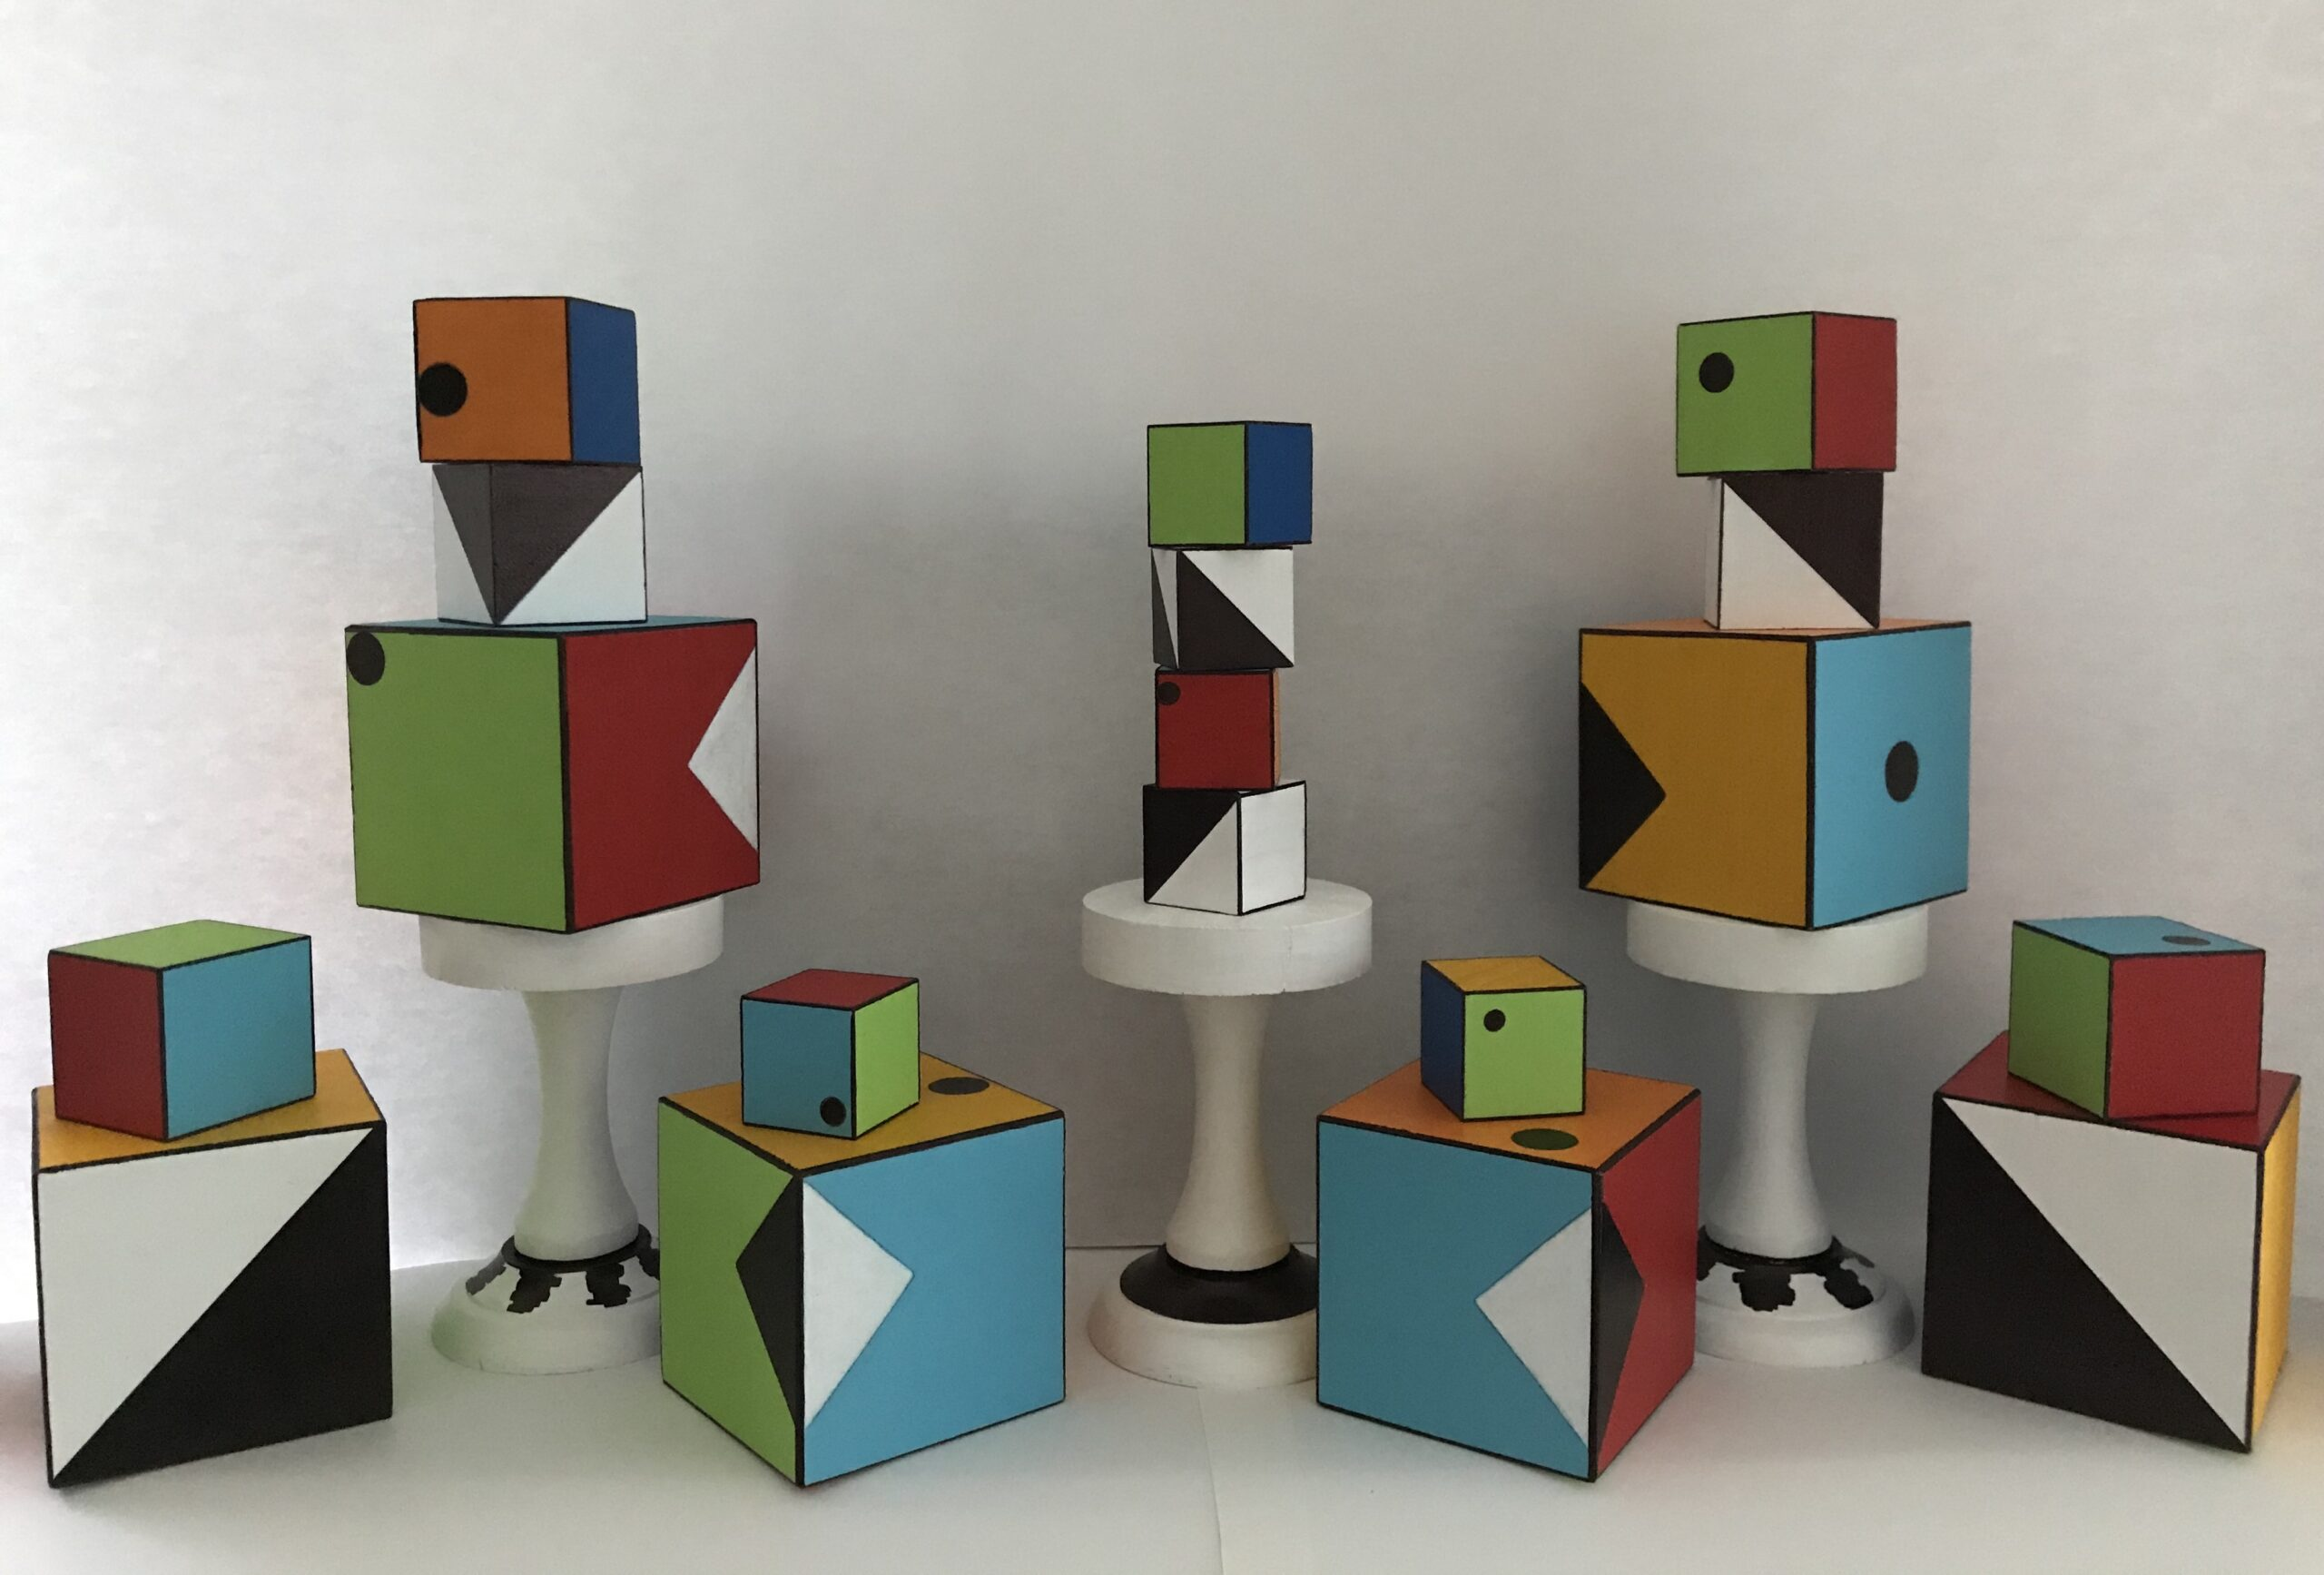 """Building Blocks of Life"" by Lisa Collodoro, acrylic on wood, sizes range from 1.5 to 3.5 inches"